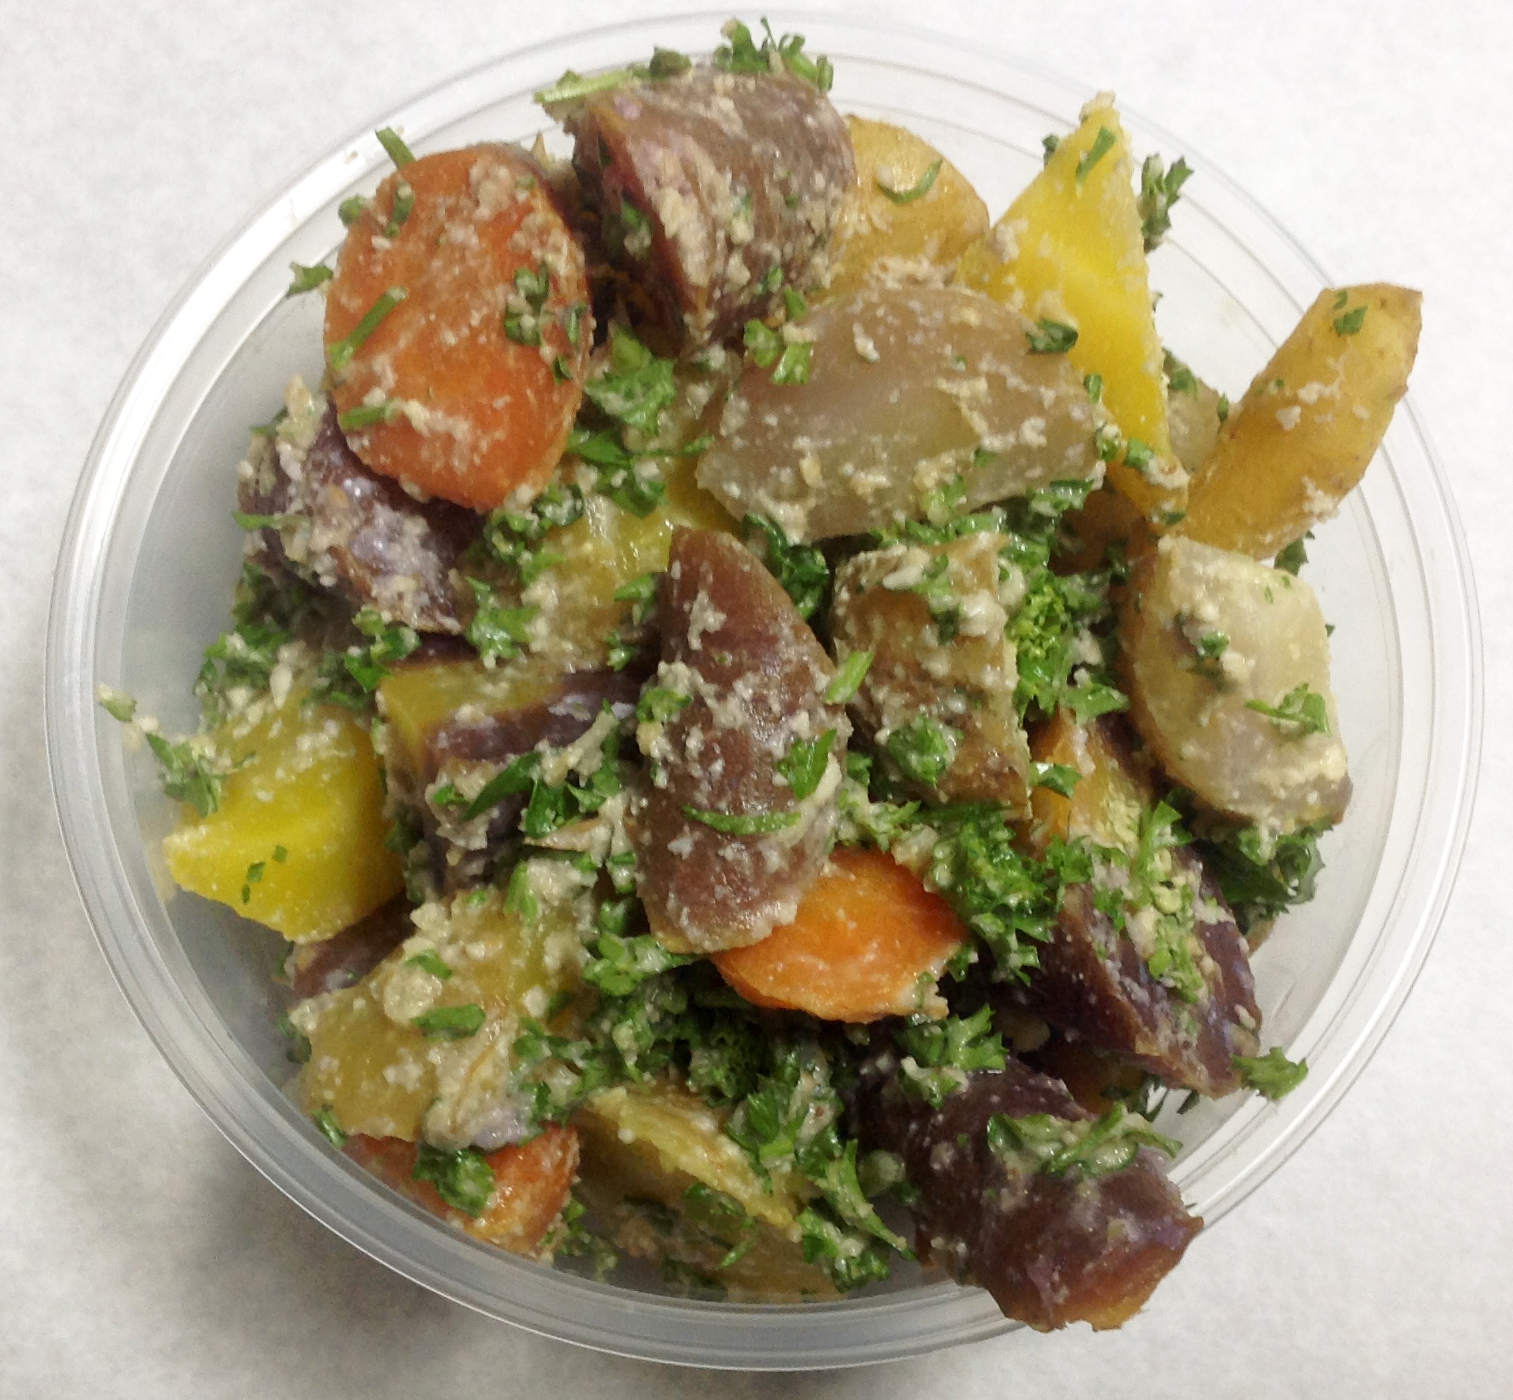 Boiled salad of colorful heirloom carrots with parsley and garlic sauce.